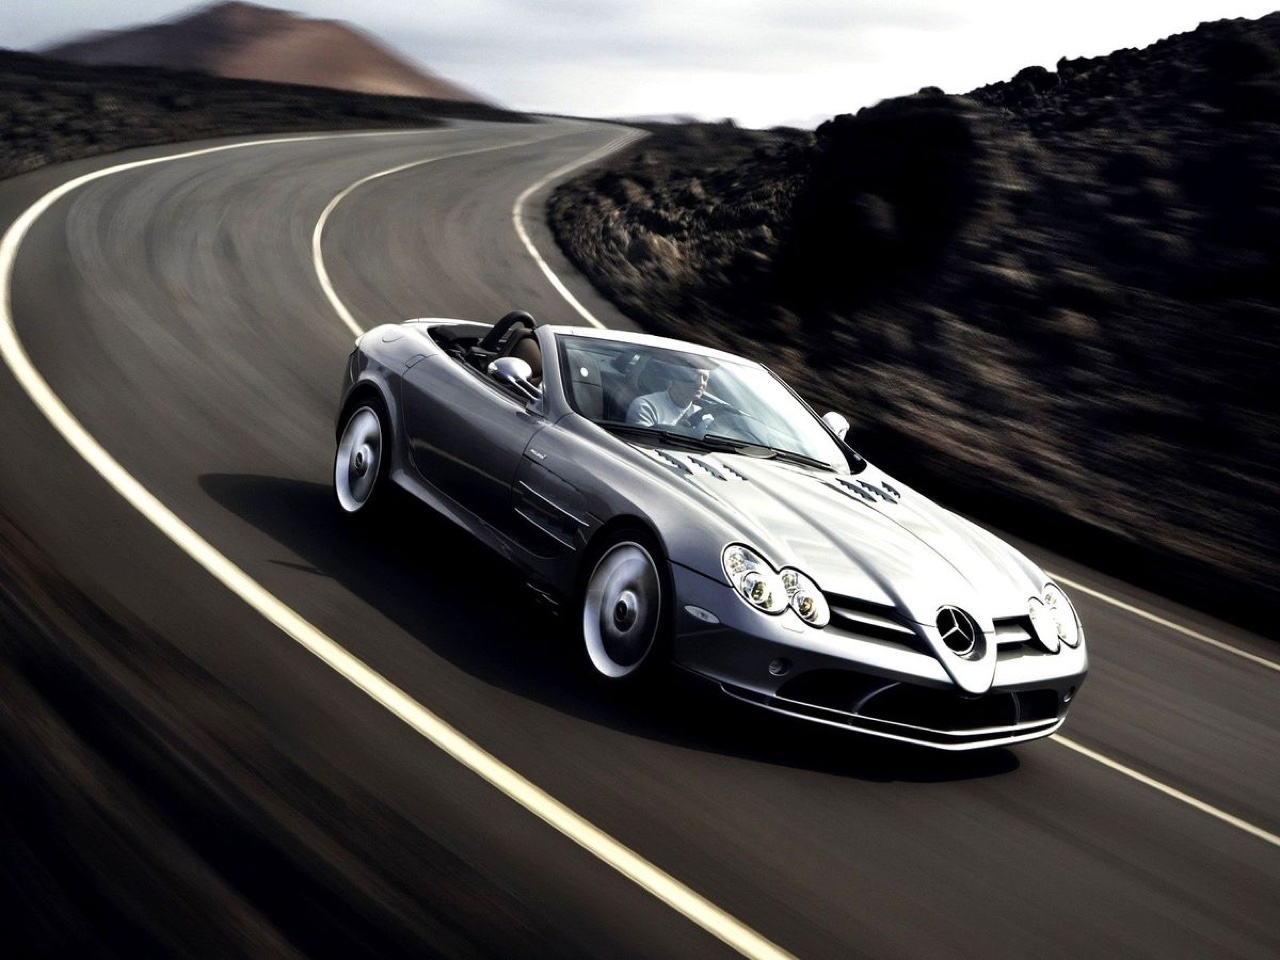 Mercedes SLR McLaren Stirling Moss - Bouquet final ! 6